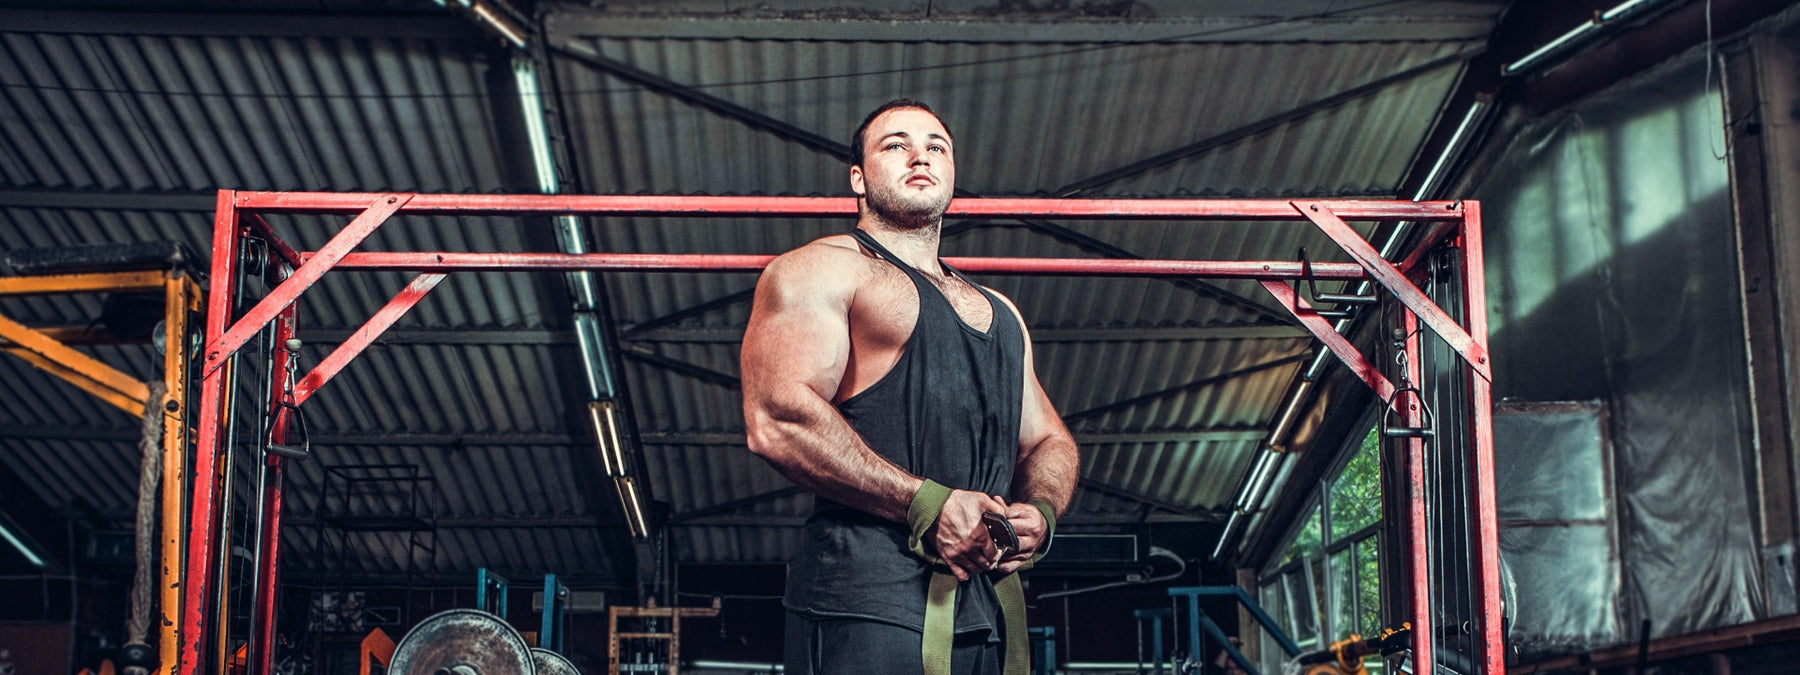 5 Strongman Movements For A Stronger, Bigger, Leaner Physique